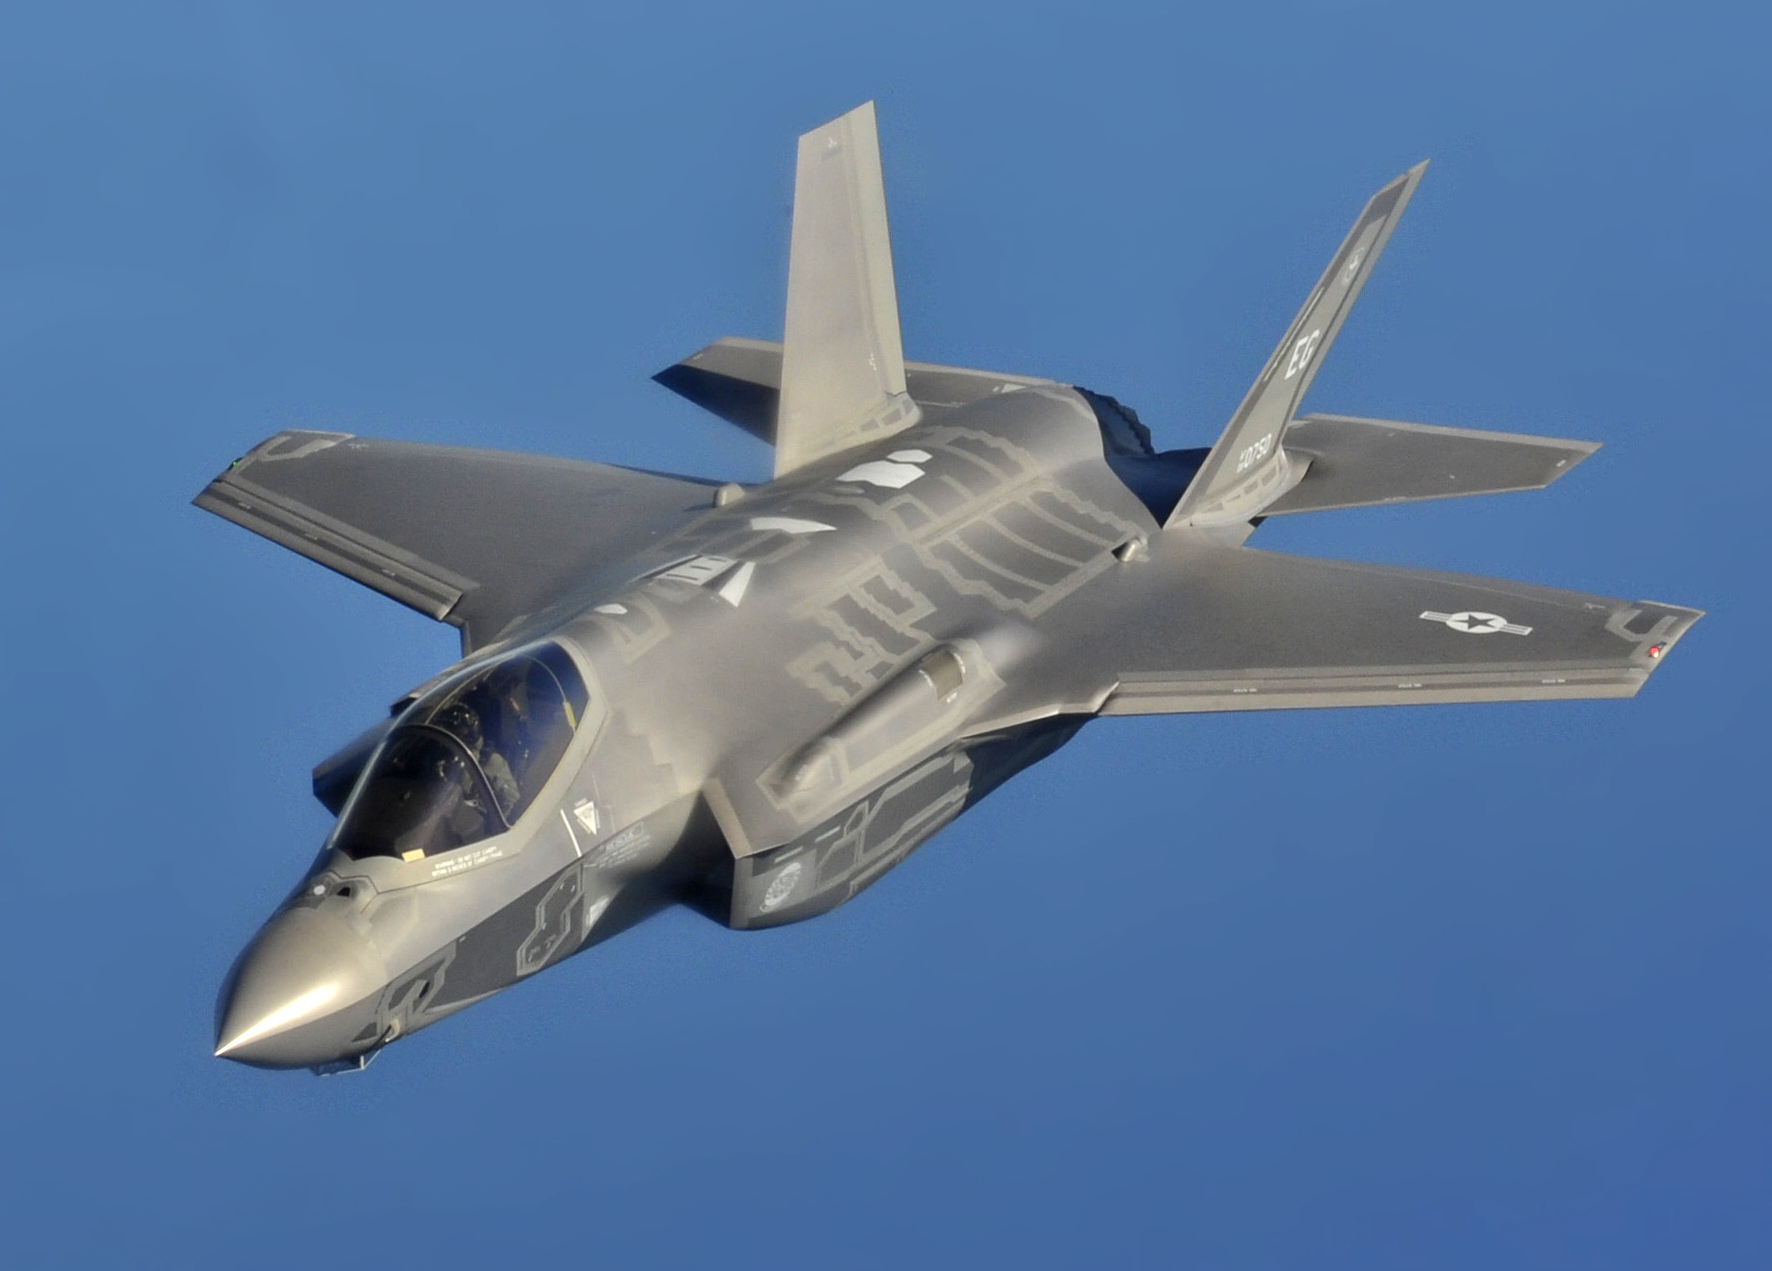 US' F-35 collides with bird during take-off from Japanese air base, pilot unhurt